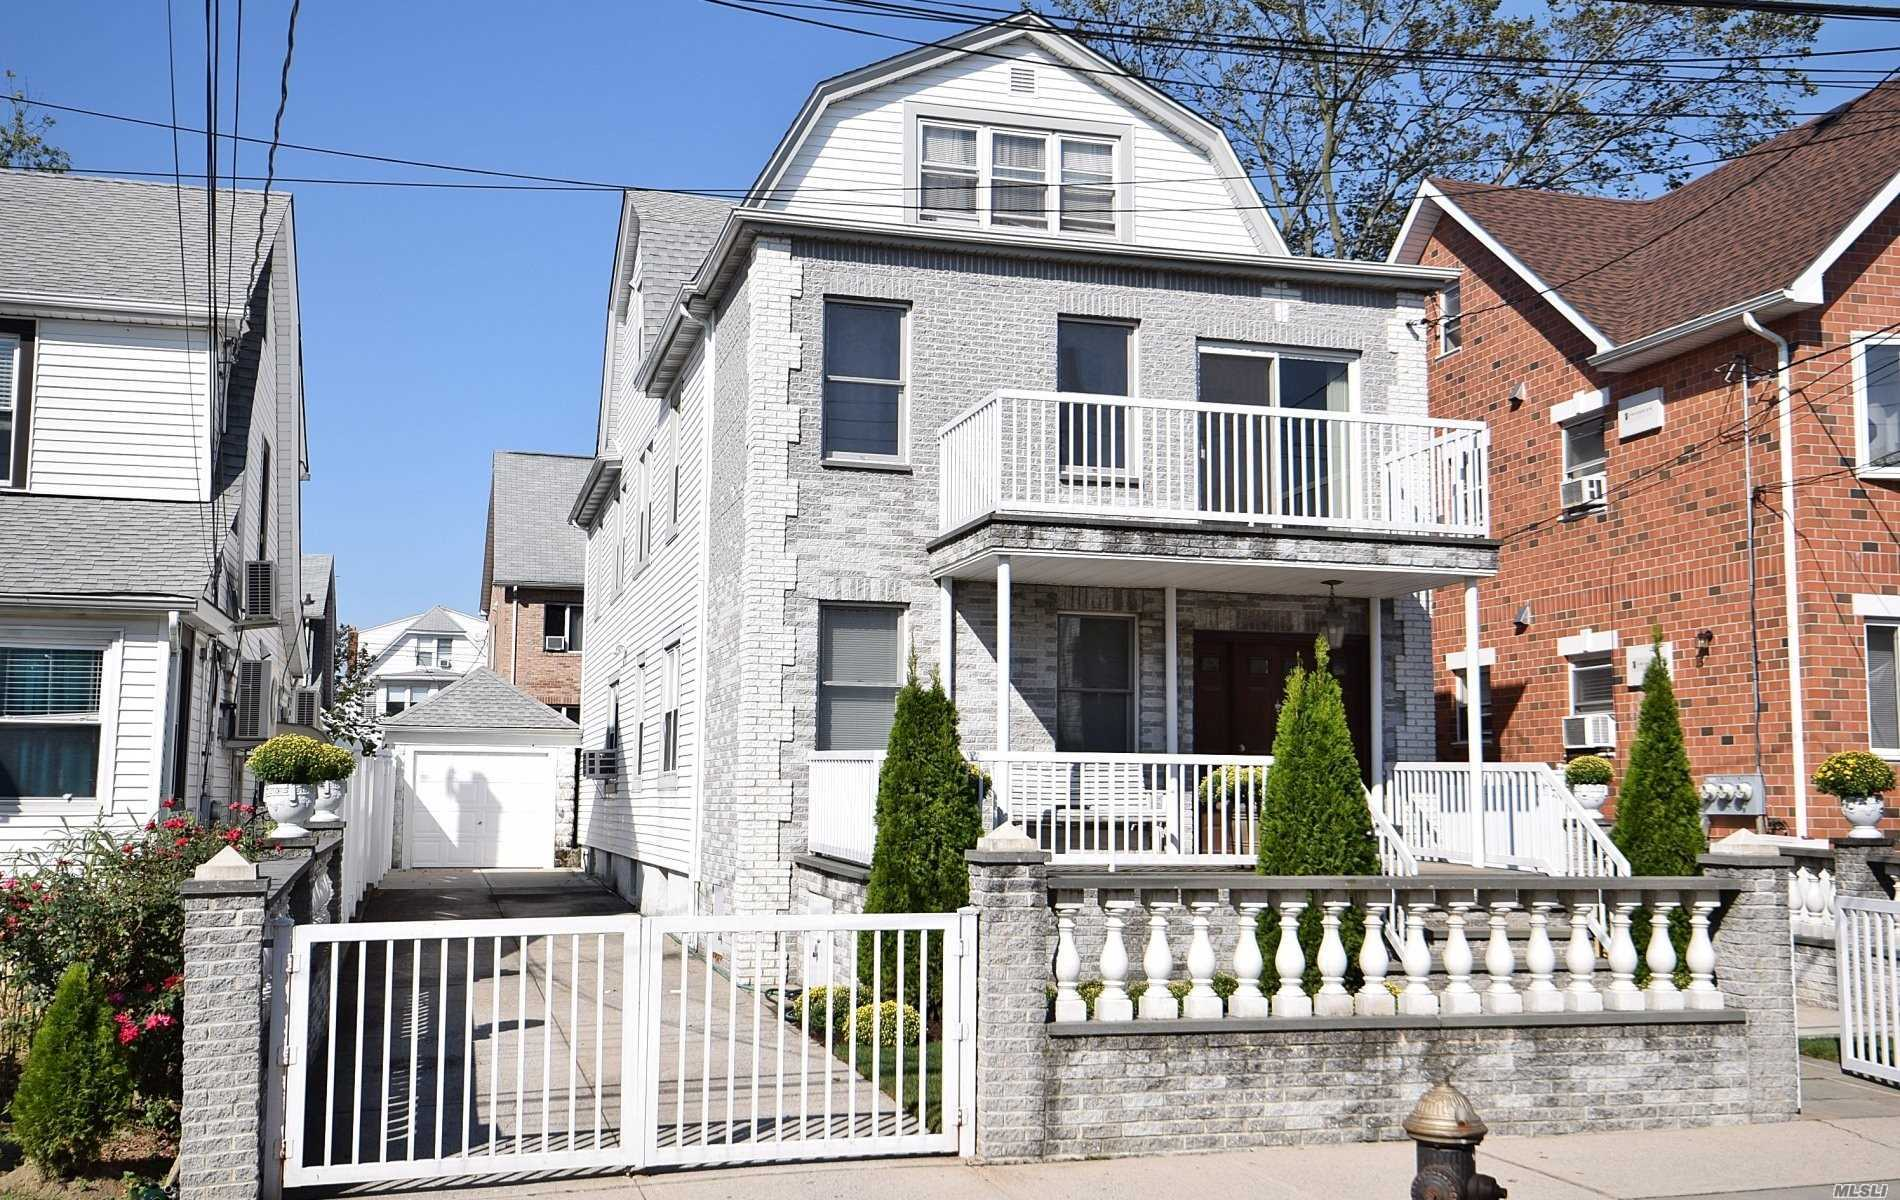 42-36 161st St 11358 - One of Flushing Homes for Sale